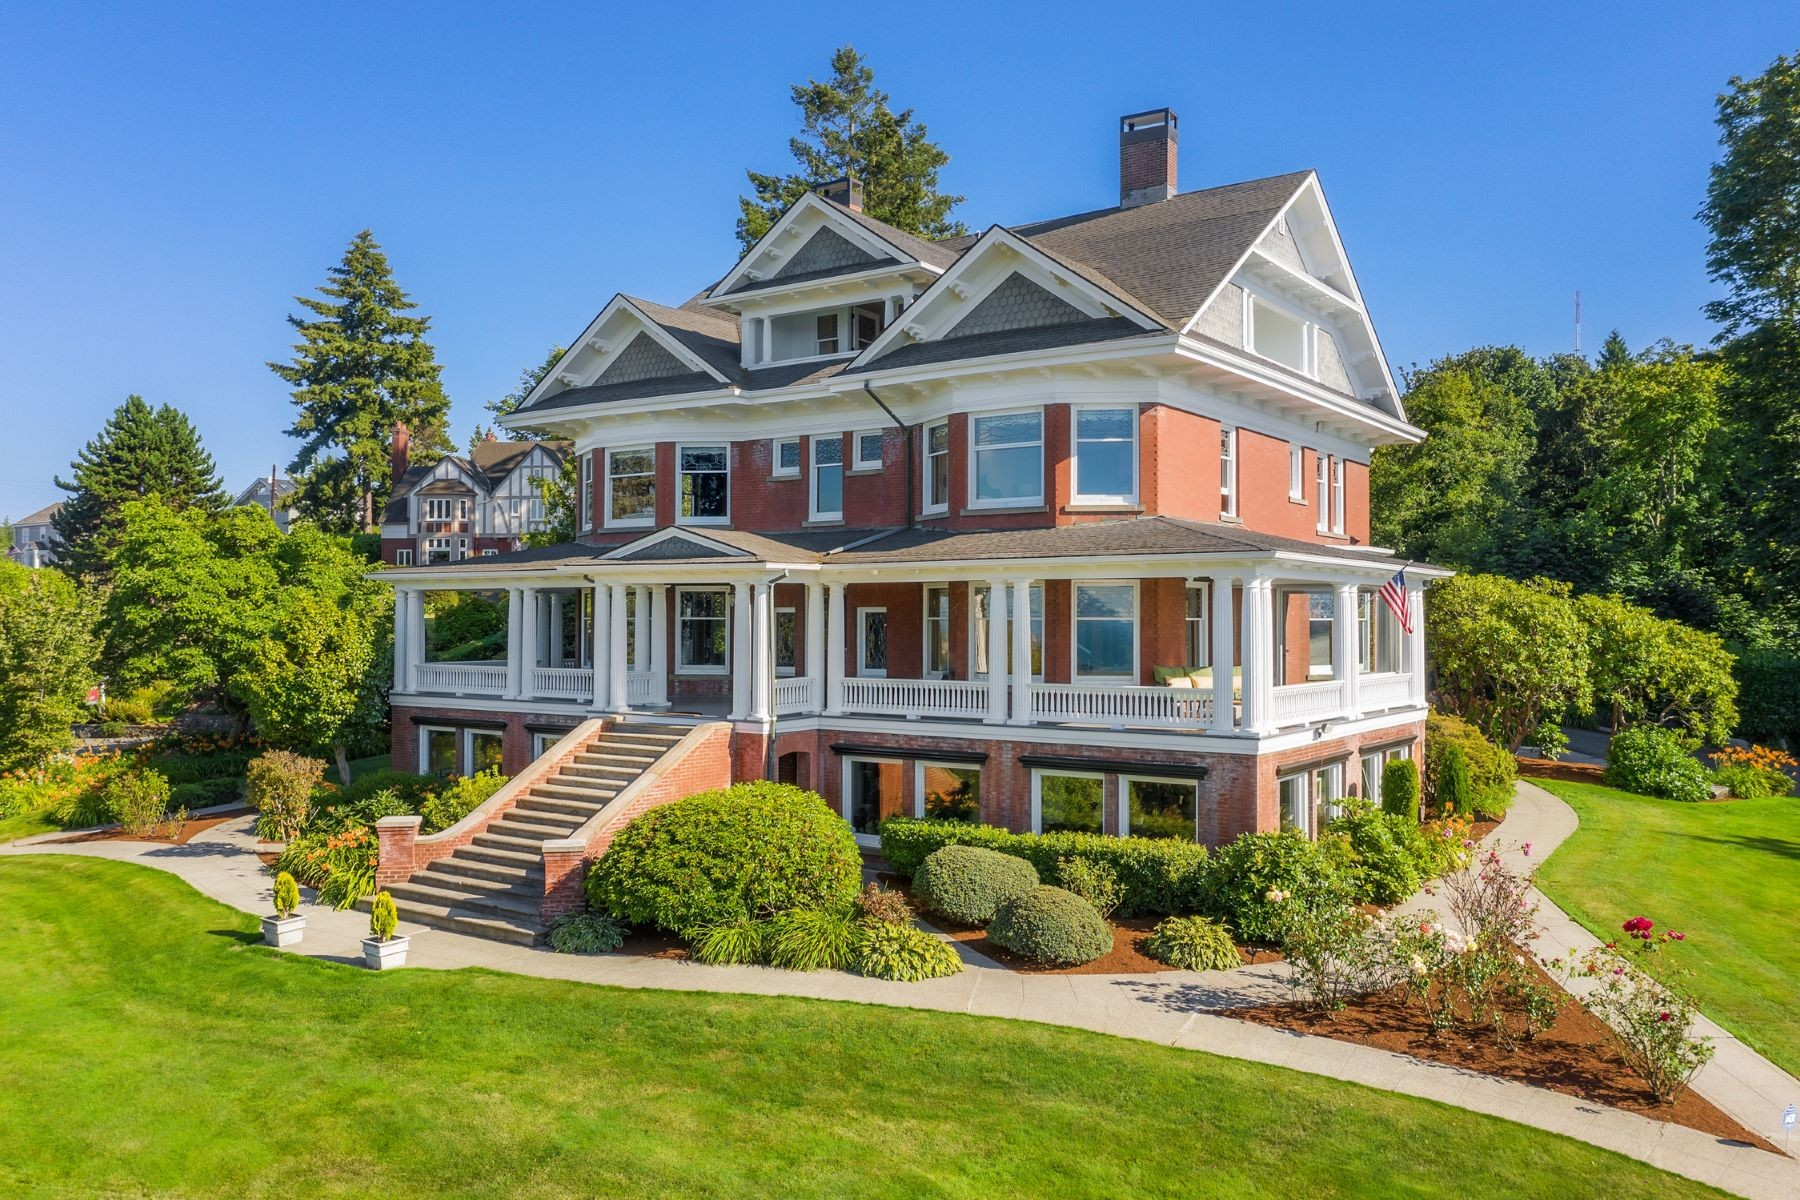 "The Rucker Mansion in Everett is over 100 years old, and currently on sale for $3.5 million. The main house is 10,000 square feet, carriage house is 4,400 square feet, and all sits on almost three acres of land. It was built between 1901-1905 in Everett by the Rucker Brothers who moved from Ohio and bought out John D Rockefeller's timber rights in the Northwest, for an estimated $44,000. Some standout features include an entrance is covered with cut velvet designed by Sloan's of New York, a Smoking Room with Bird's Eye Maple trim, Honduran Mahogany and leather wall covering, and a kitchen made of Rojo Coralita Marble that came off the floor of the Seattle Opera House when it was remodeled. More info{&nbsp;}<a  href=""https://www.ruckermansioneverett.com/"" target=""_blank"" title=""https://www.ruckermansioneverett.com/"">online</a>. (Image:{&nbsp;}Cory Holland at Clarity Northwest)"